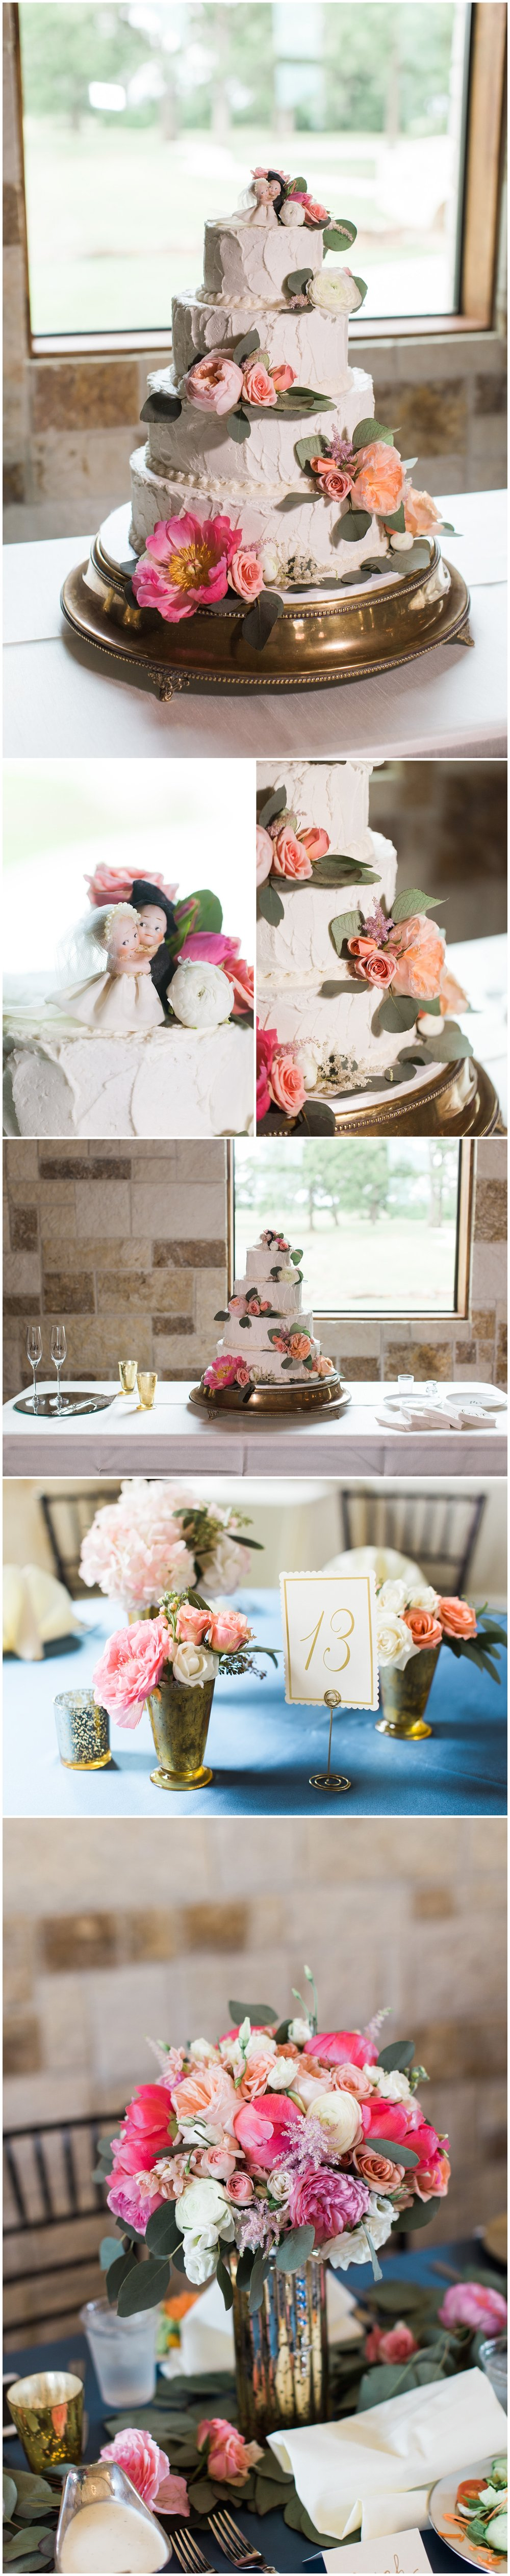 Brownstone_Reserve_Wedding_Kristina_Ross_Photography_0028.jpg